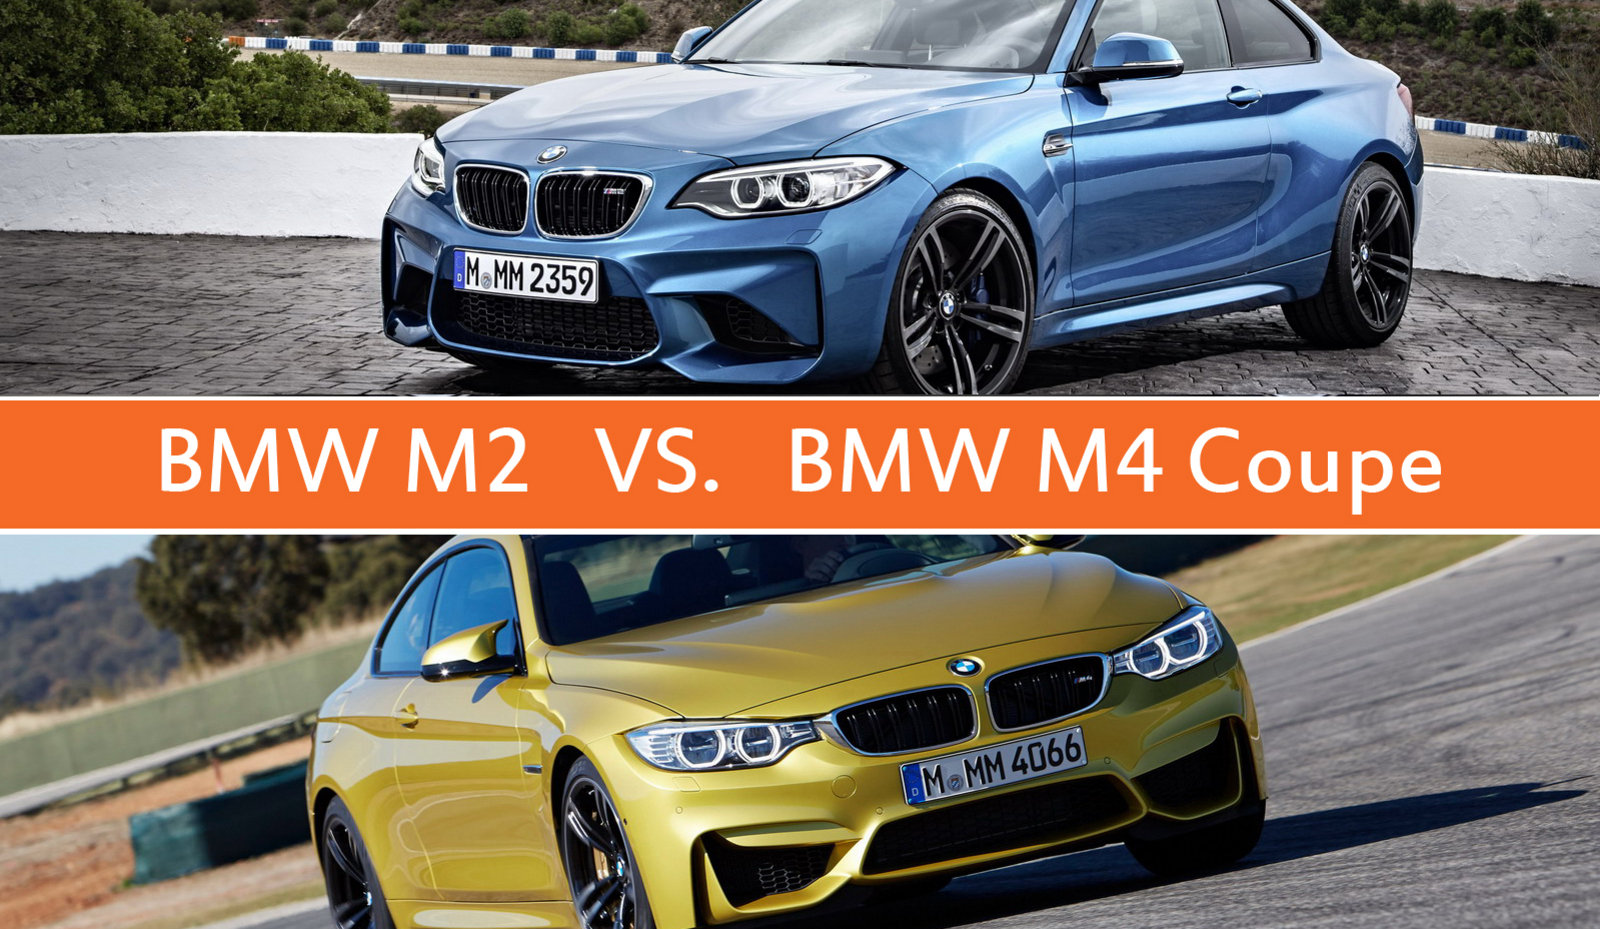 Bmw M2 Top Speed Bmw M2 Vs Bmw M4 News Gallery Top Speed